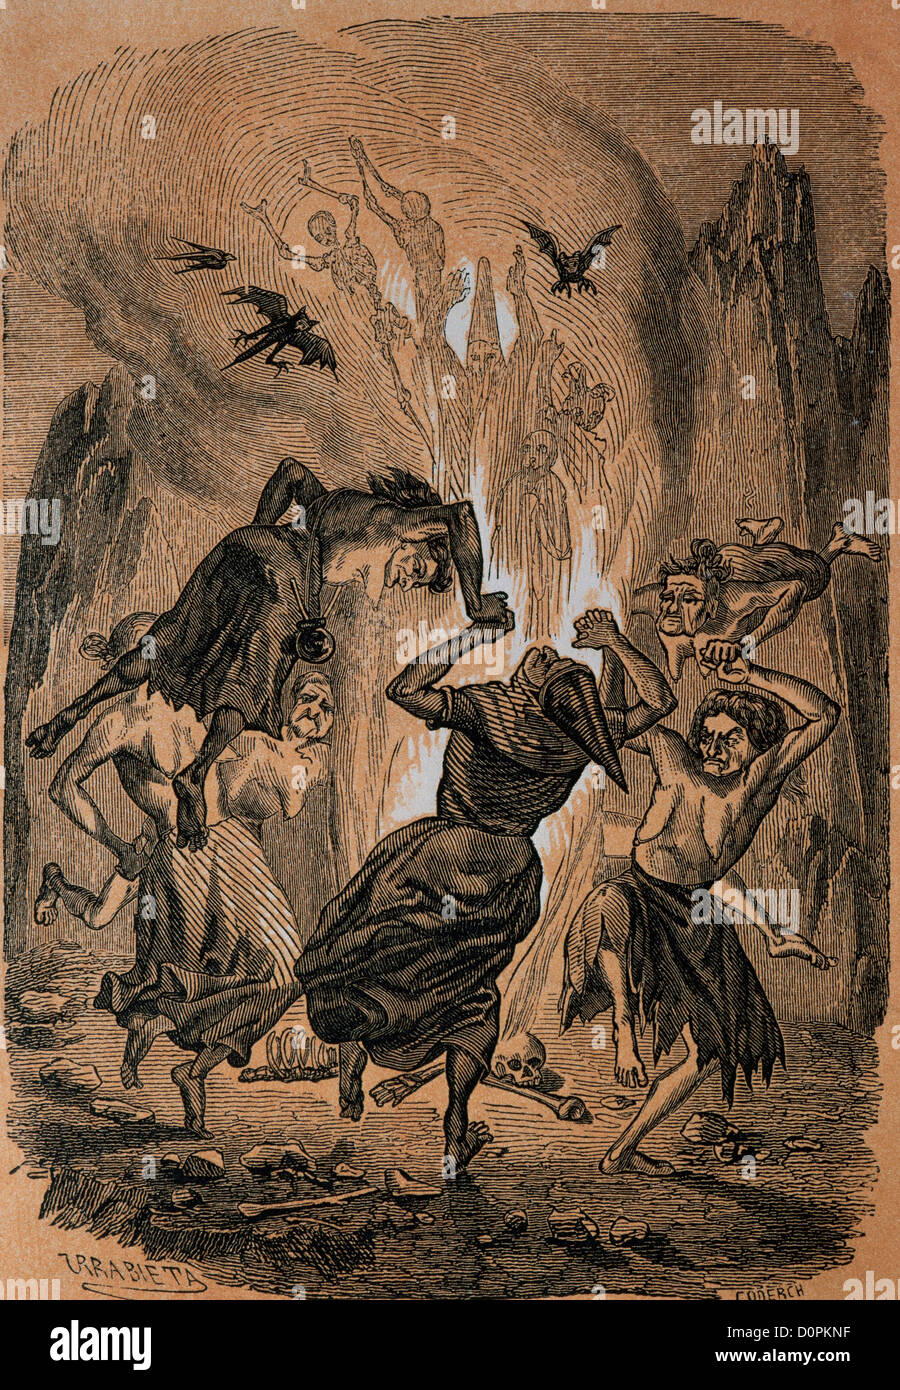 Wenceslao Ayguals de Izco (1801-1875). Spanish writer. Poor and Rich or The Witch of Madrid. 1849. - Stock Image